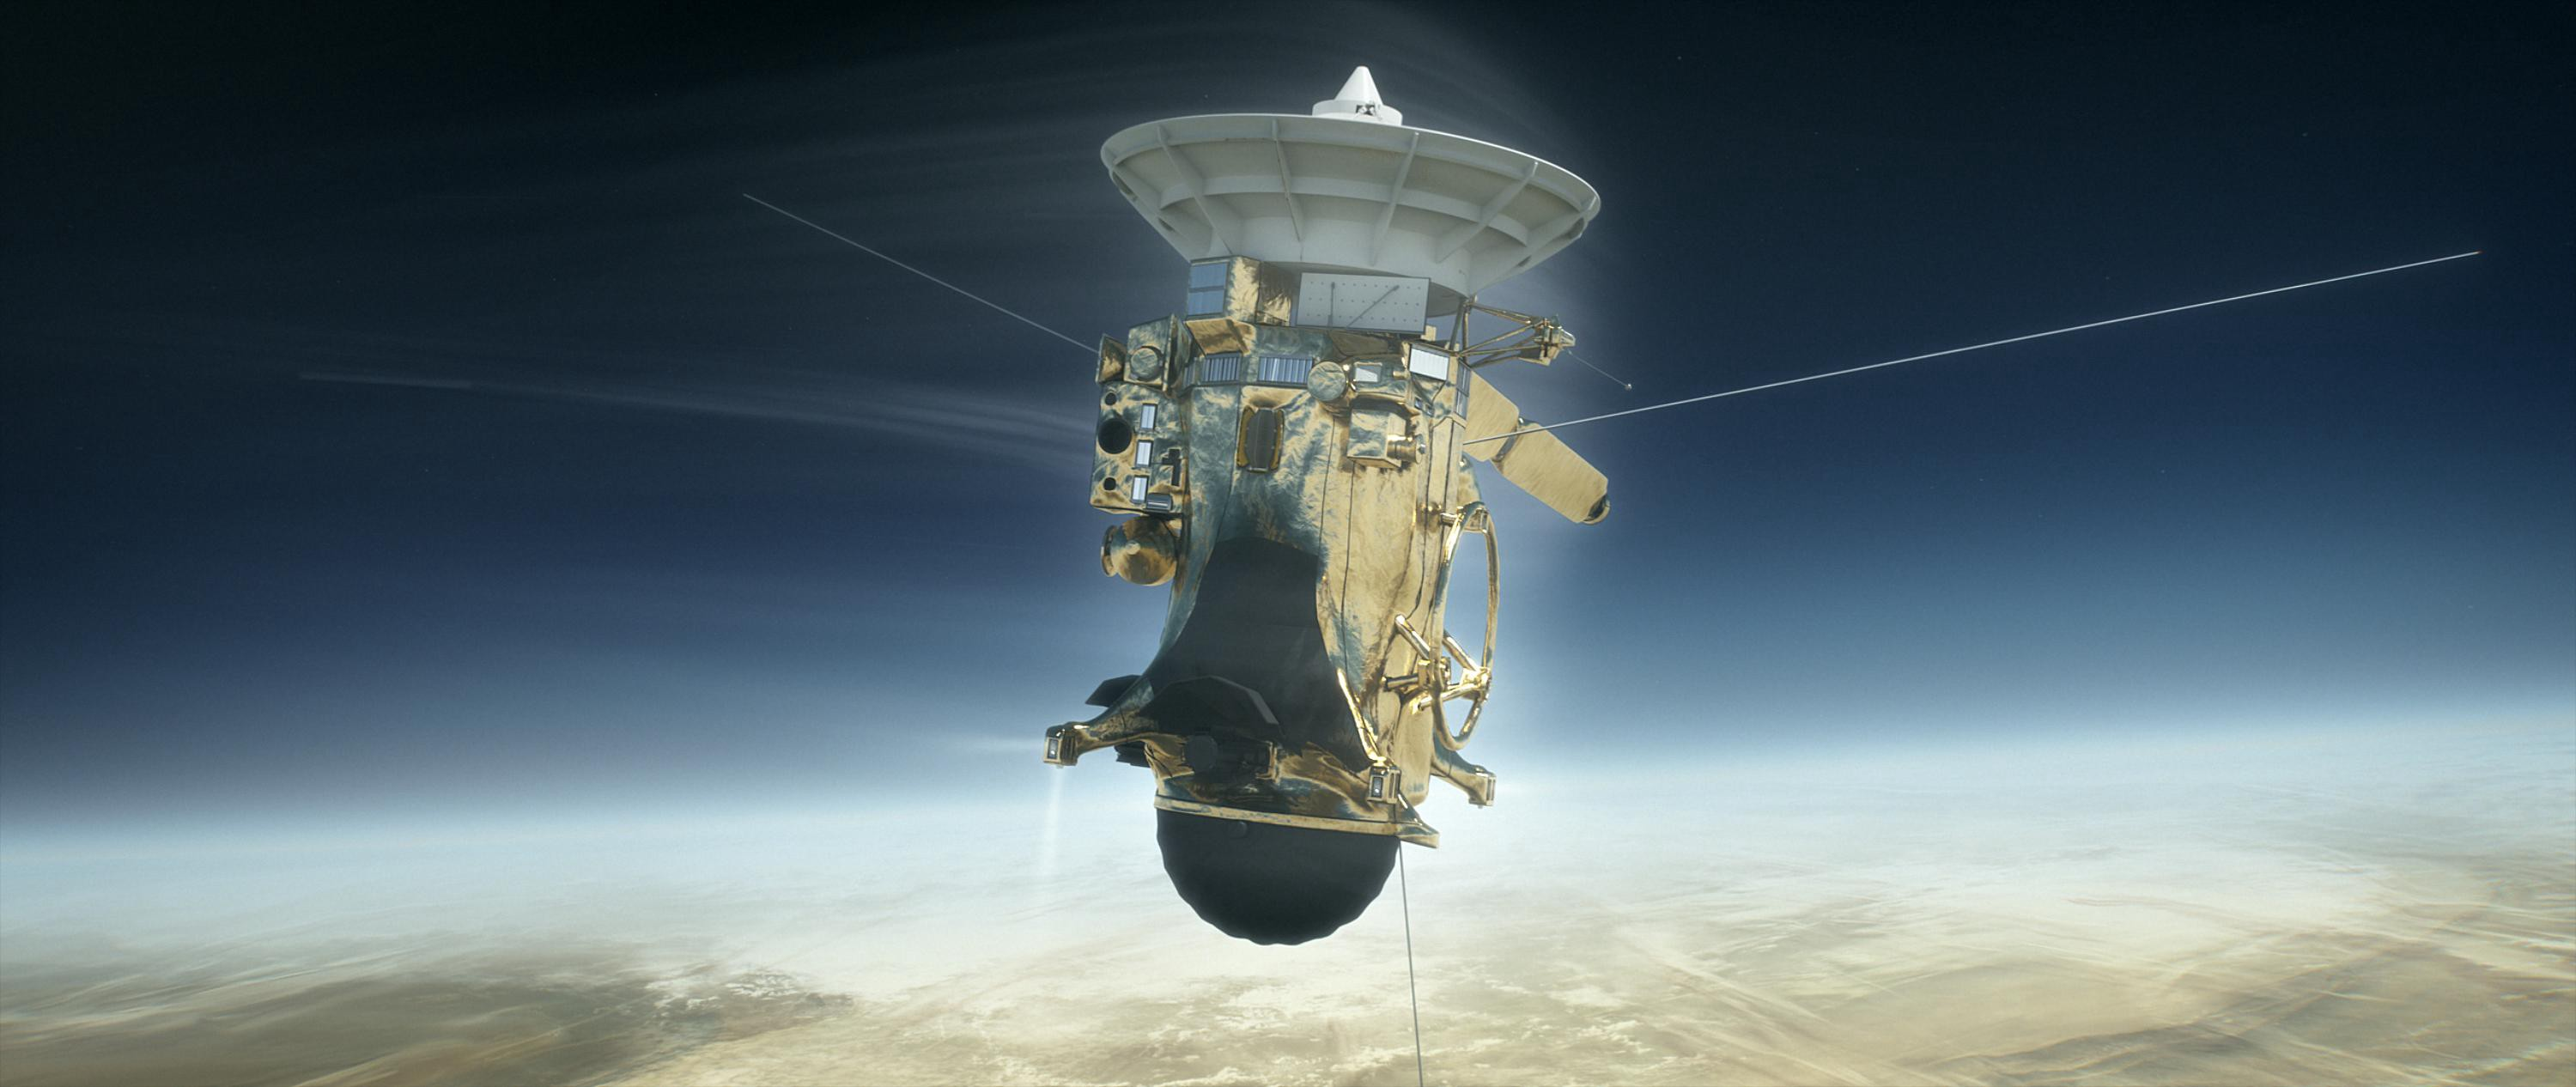 The Cassini spacecraft plunging into the atmosphere of Saturn.